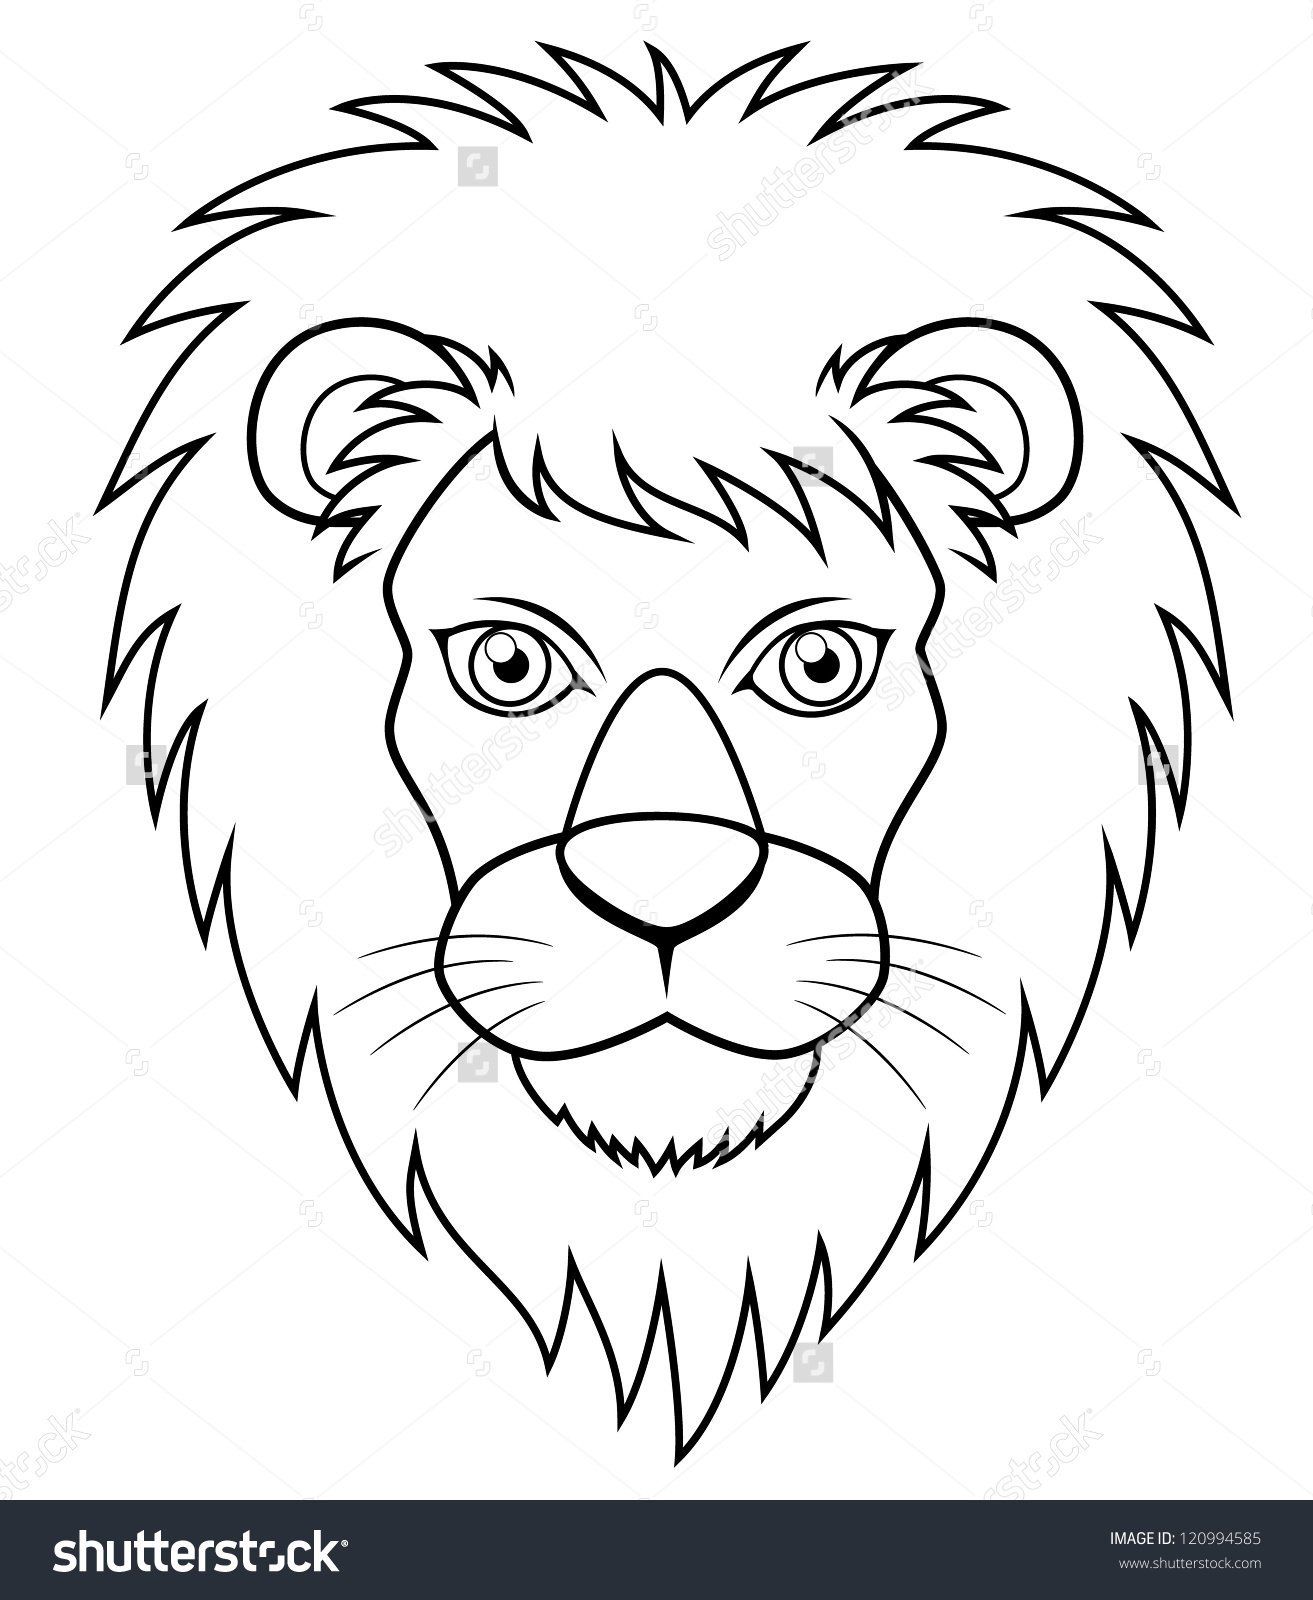 Line Drawing Lion Face : Lion face drawing at getdrawings free for personal